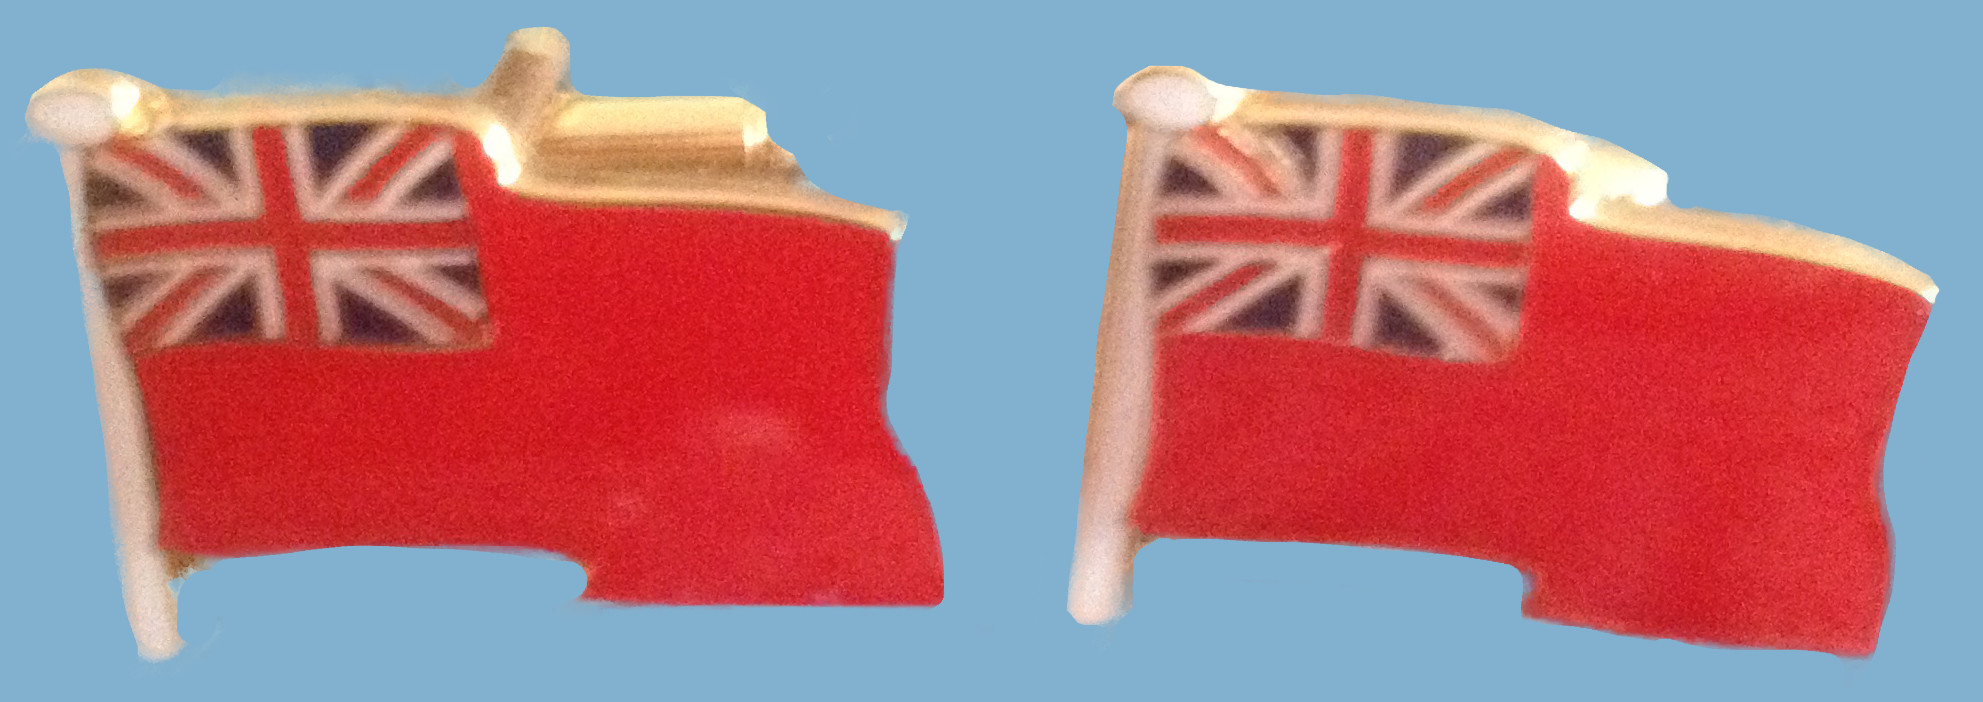 506a Red Ensign cufflinks